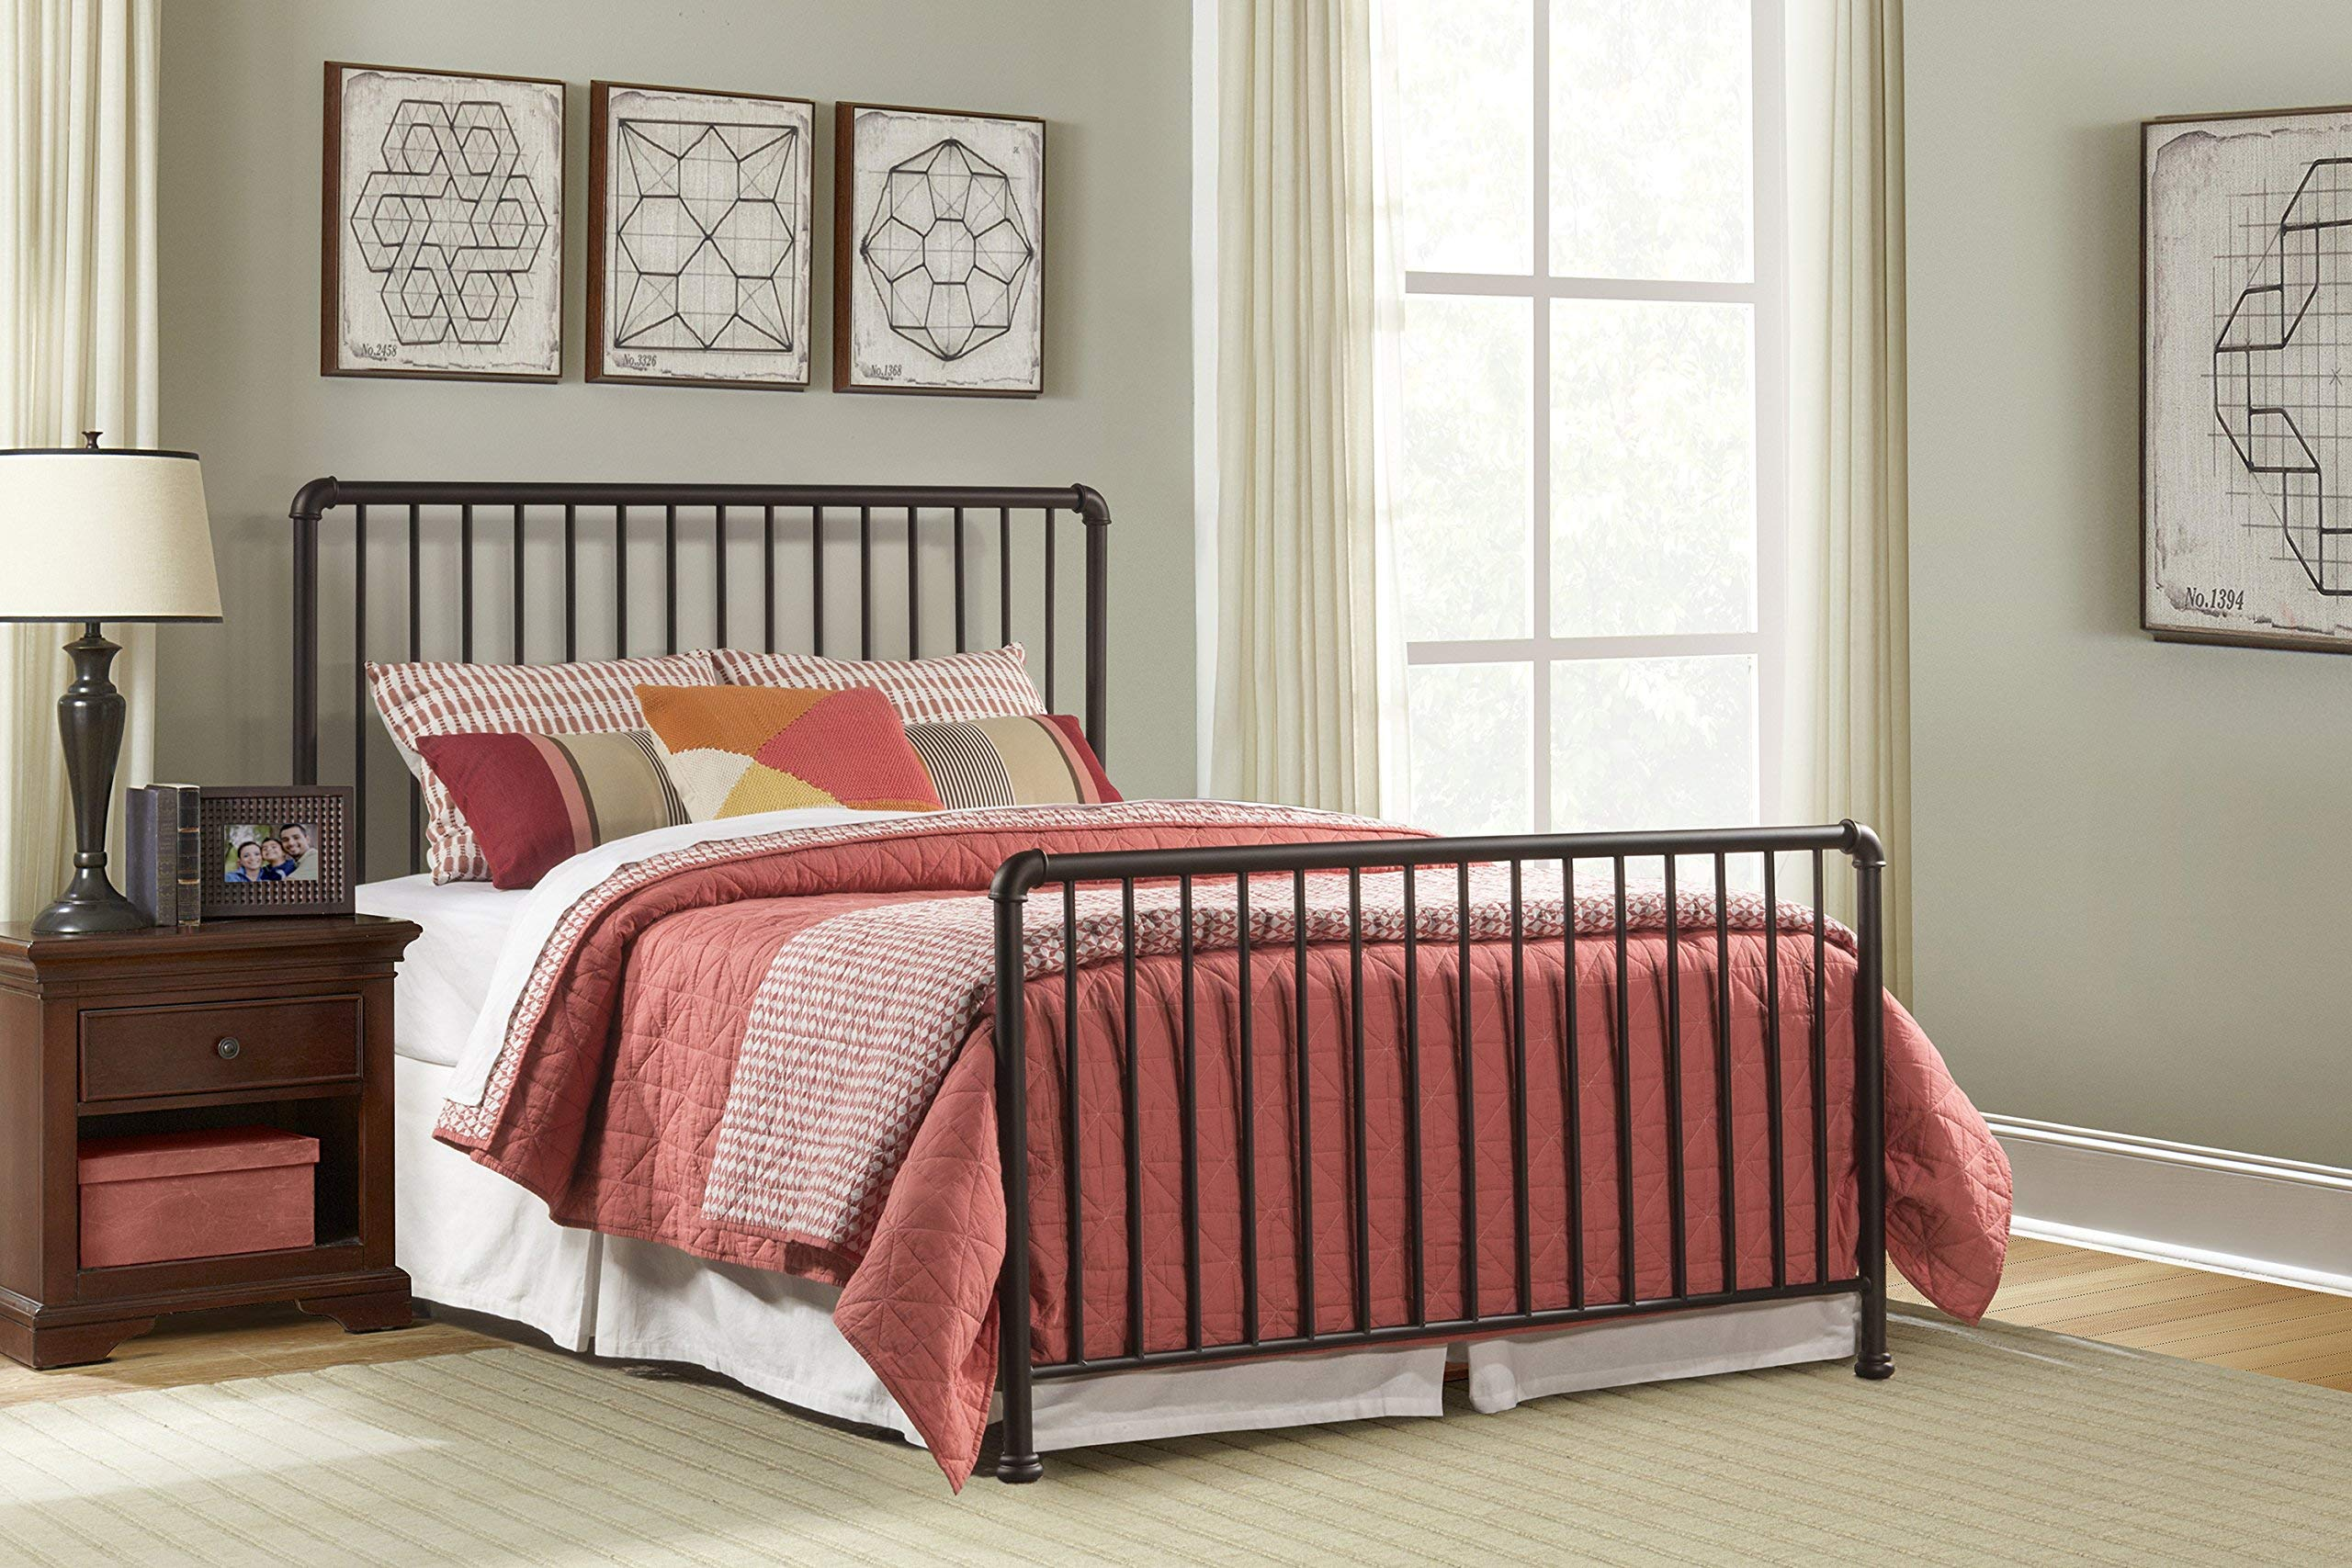 Hillsdale Furniture Bed Set With Frame Full Oiled Bronze by Hillsdale Furniture